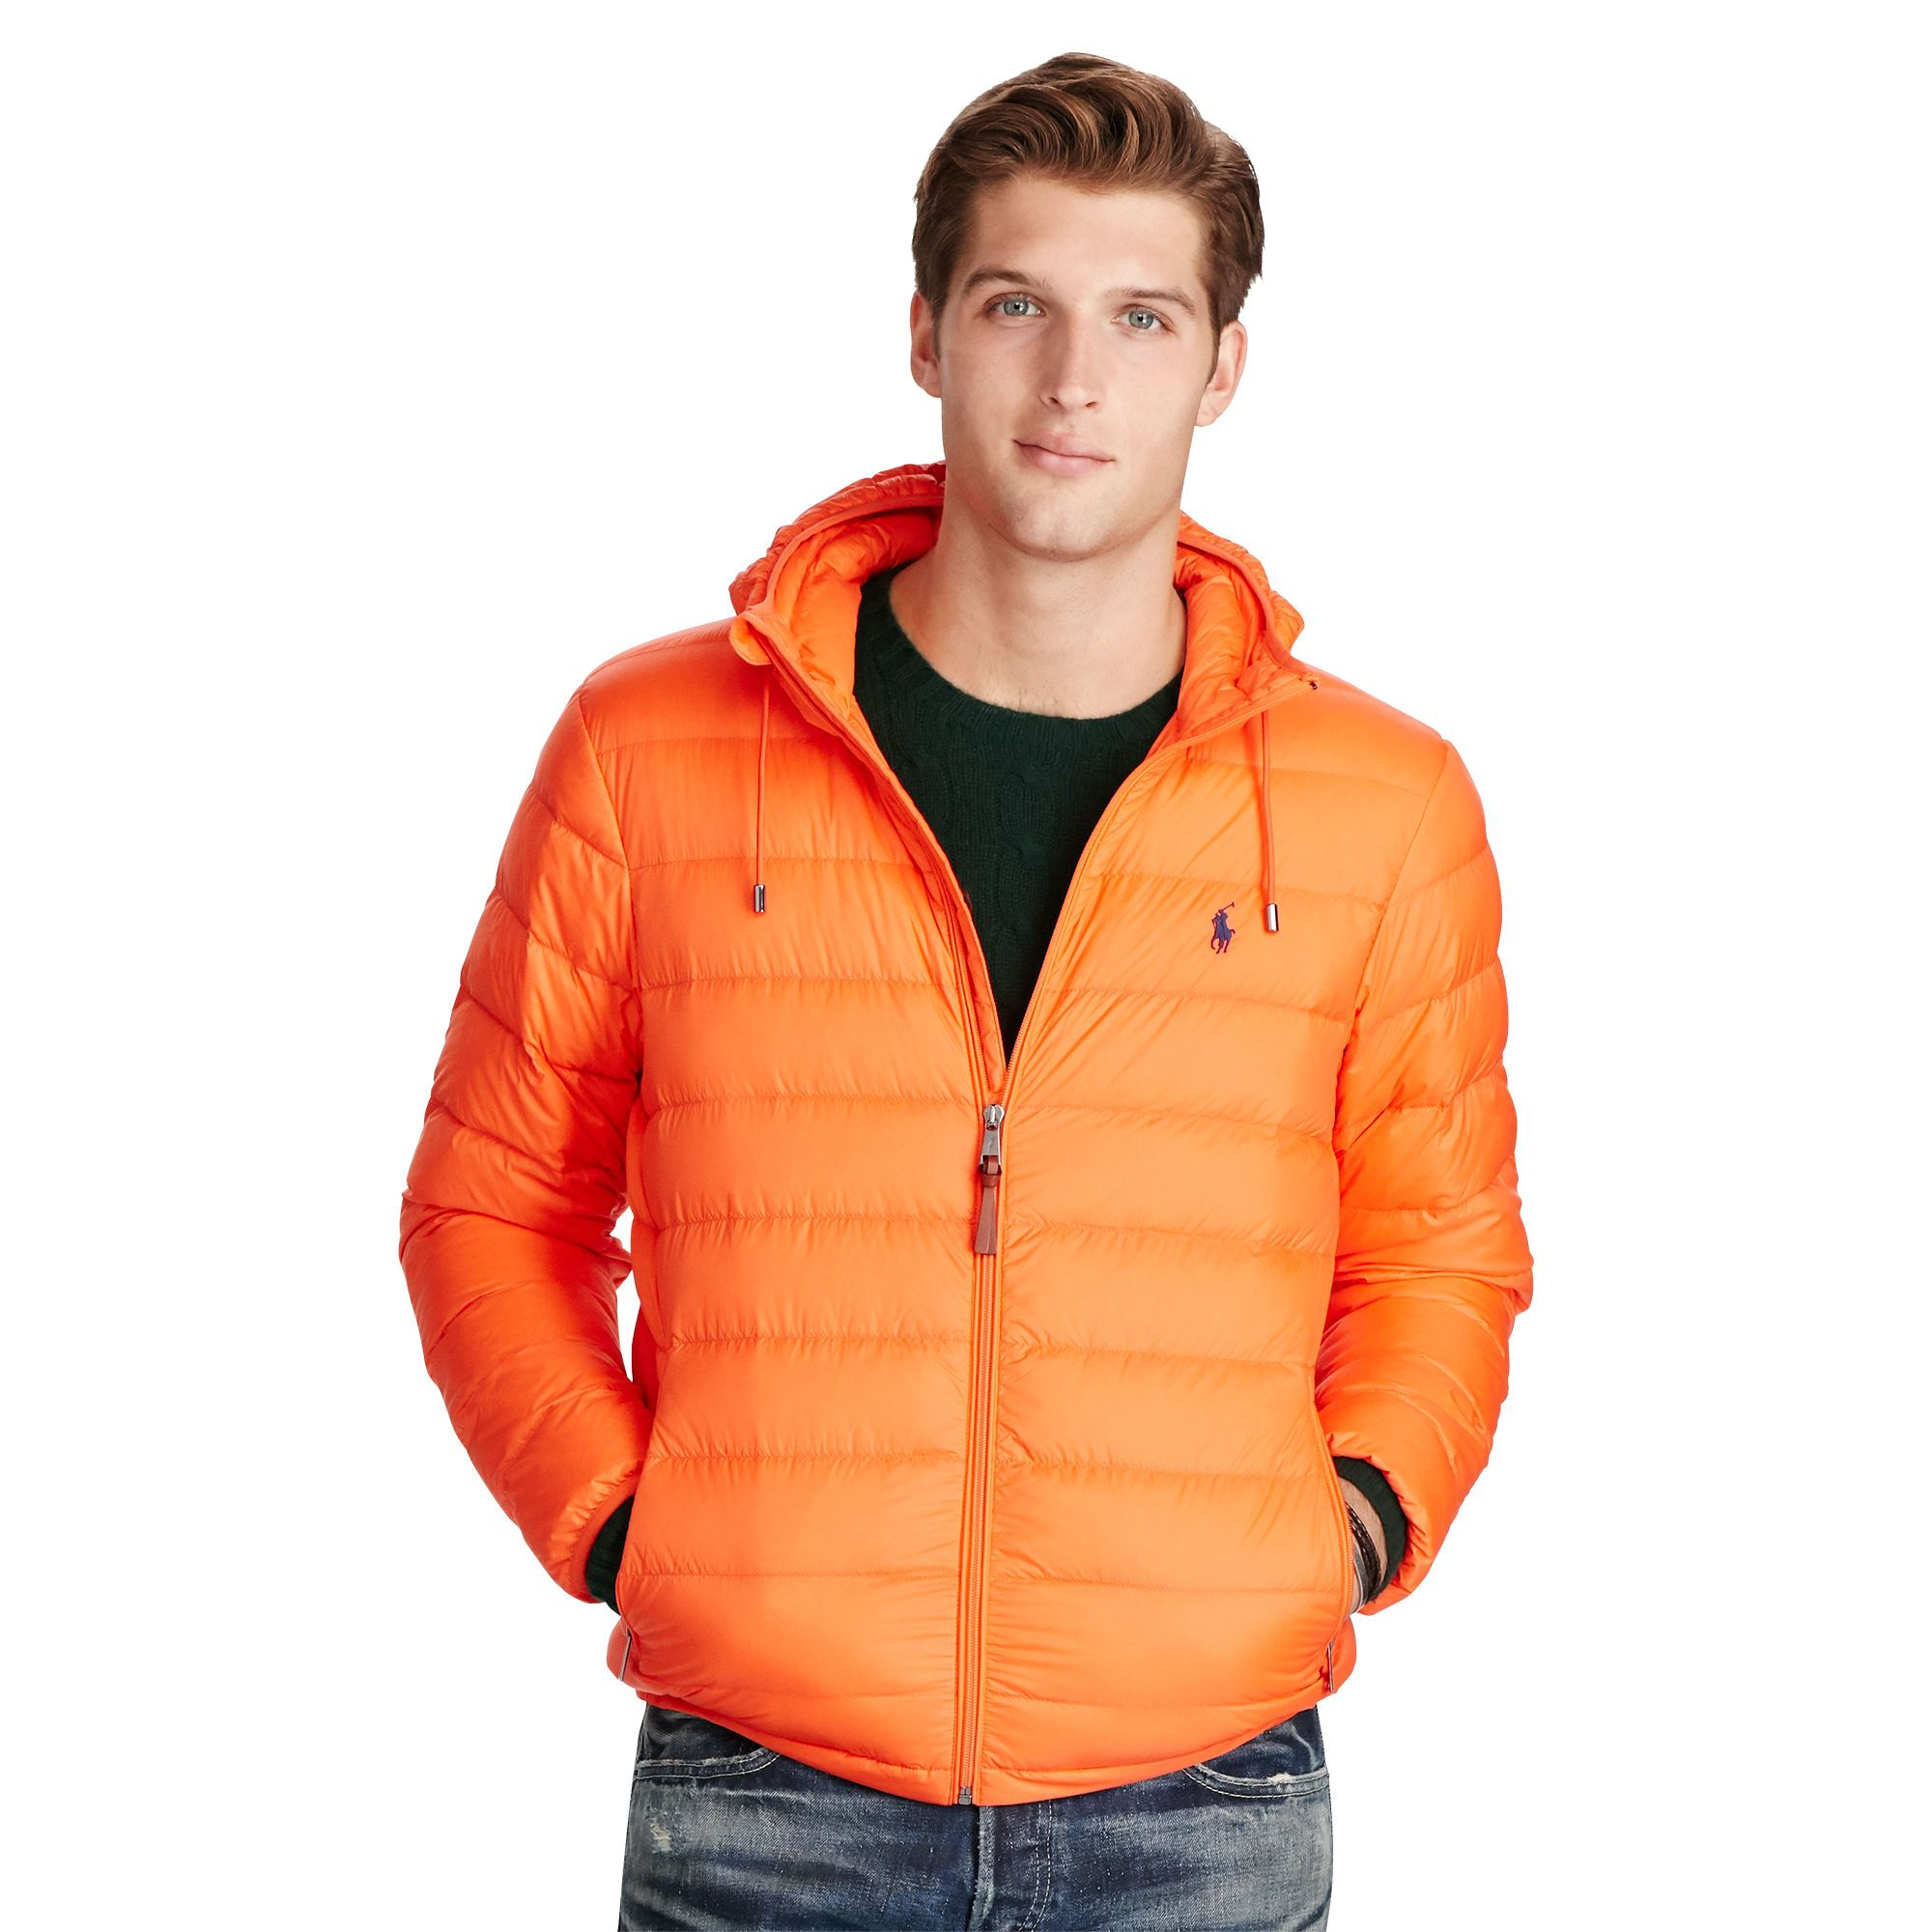 "<p><strong data-redactor-tag=""strong"" data-verified=""redactor"">Packable Down Jacket, £259</strong></p><p>Perfect for the guy who doesn't mind a bit of attention, this bright orange jacket will get him noticed on the slopes. Plus, it conveniently folds up to fit in his carry-on.<span class=""redactor-invisible-space"" data-verified=""redactor"" data-redactor-tag=""span"" data-redactor-class=""redactor-invisible-space""></span></p>"